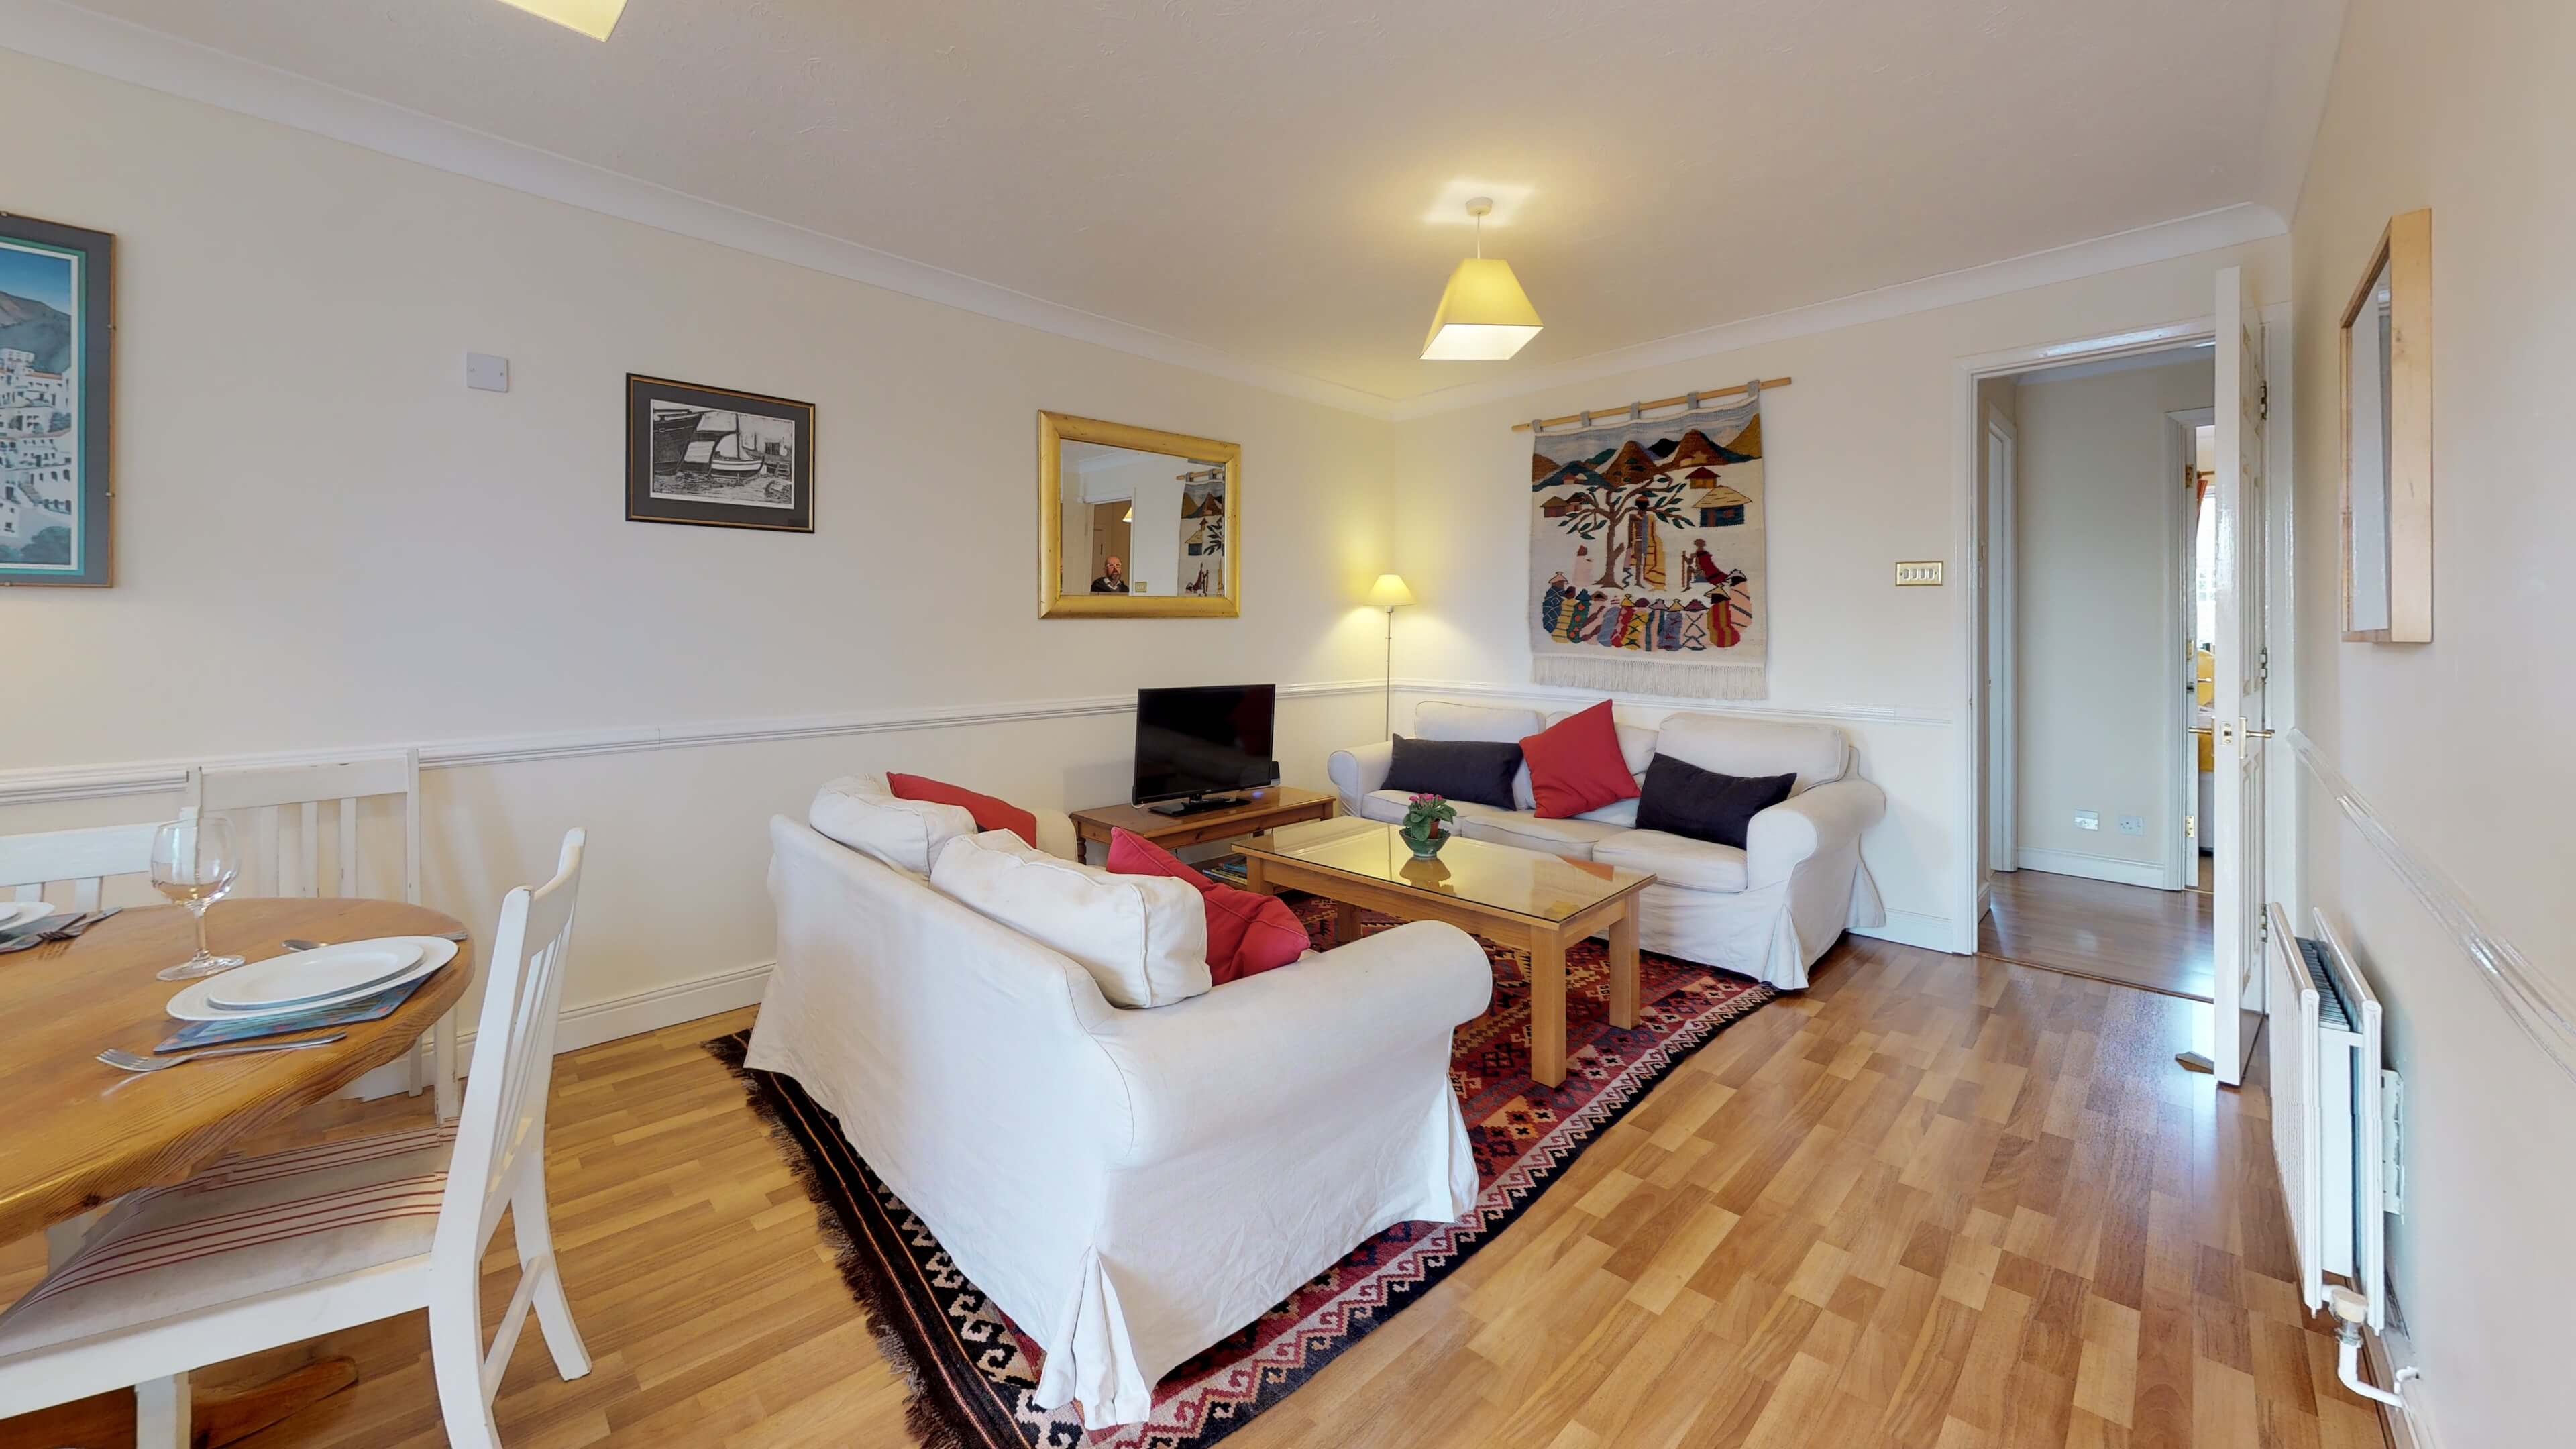 Millbank Oxford City Centre Short Stay Apartment Sleeps 4 Living Room